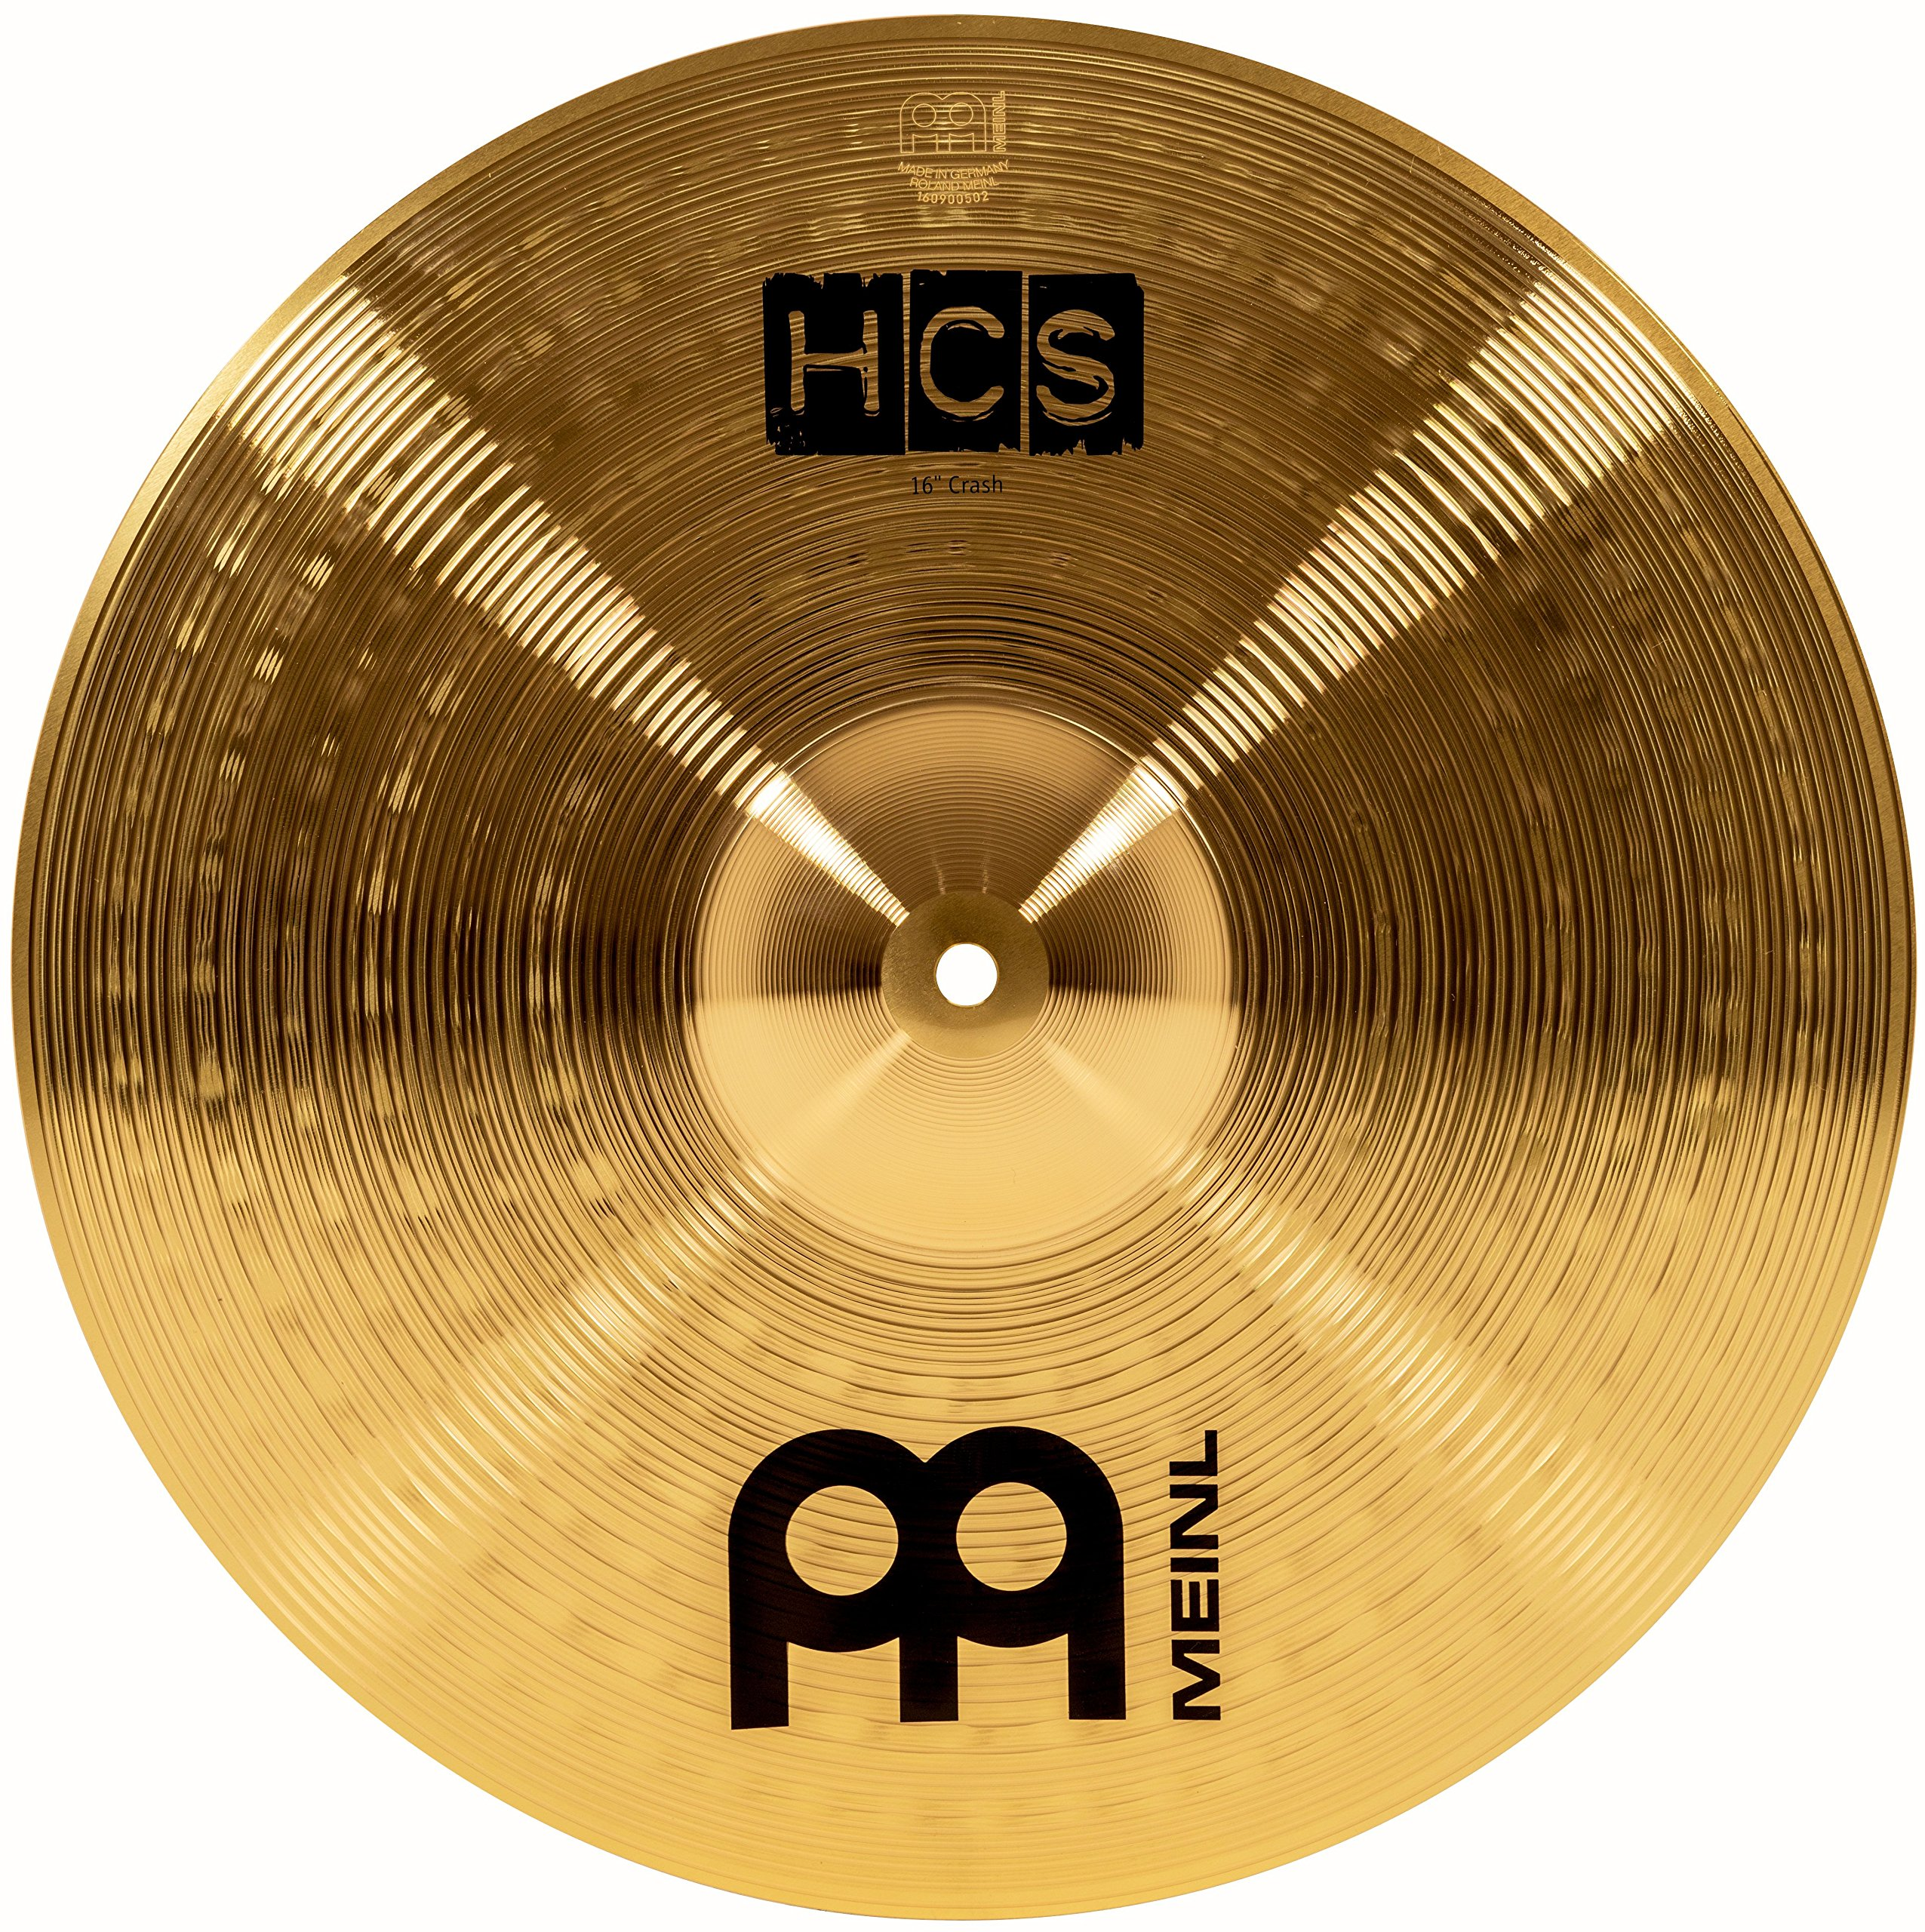 Meinl Cymbals HCS16C 16'' HCS Brass Crash Cymbal for Drum Set (VIDEO) by Meinl Cymbals (Image #1)